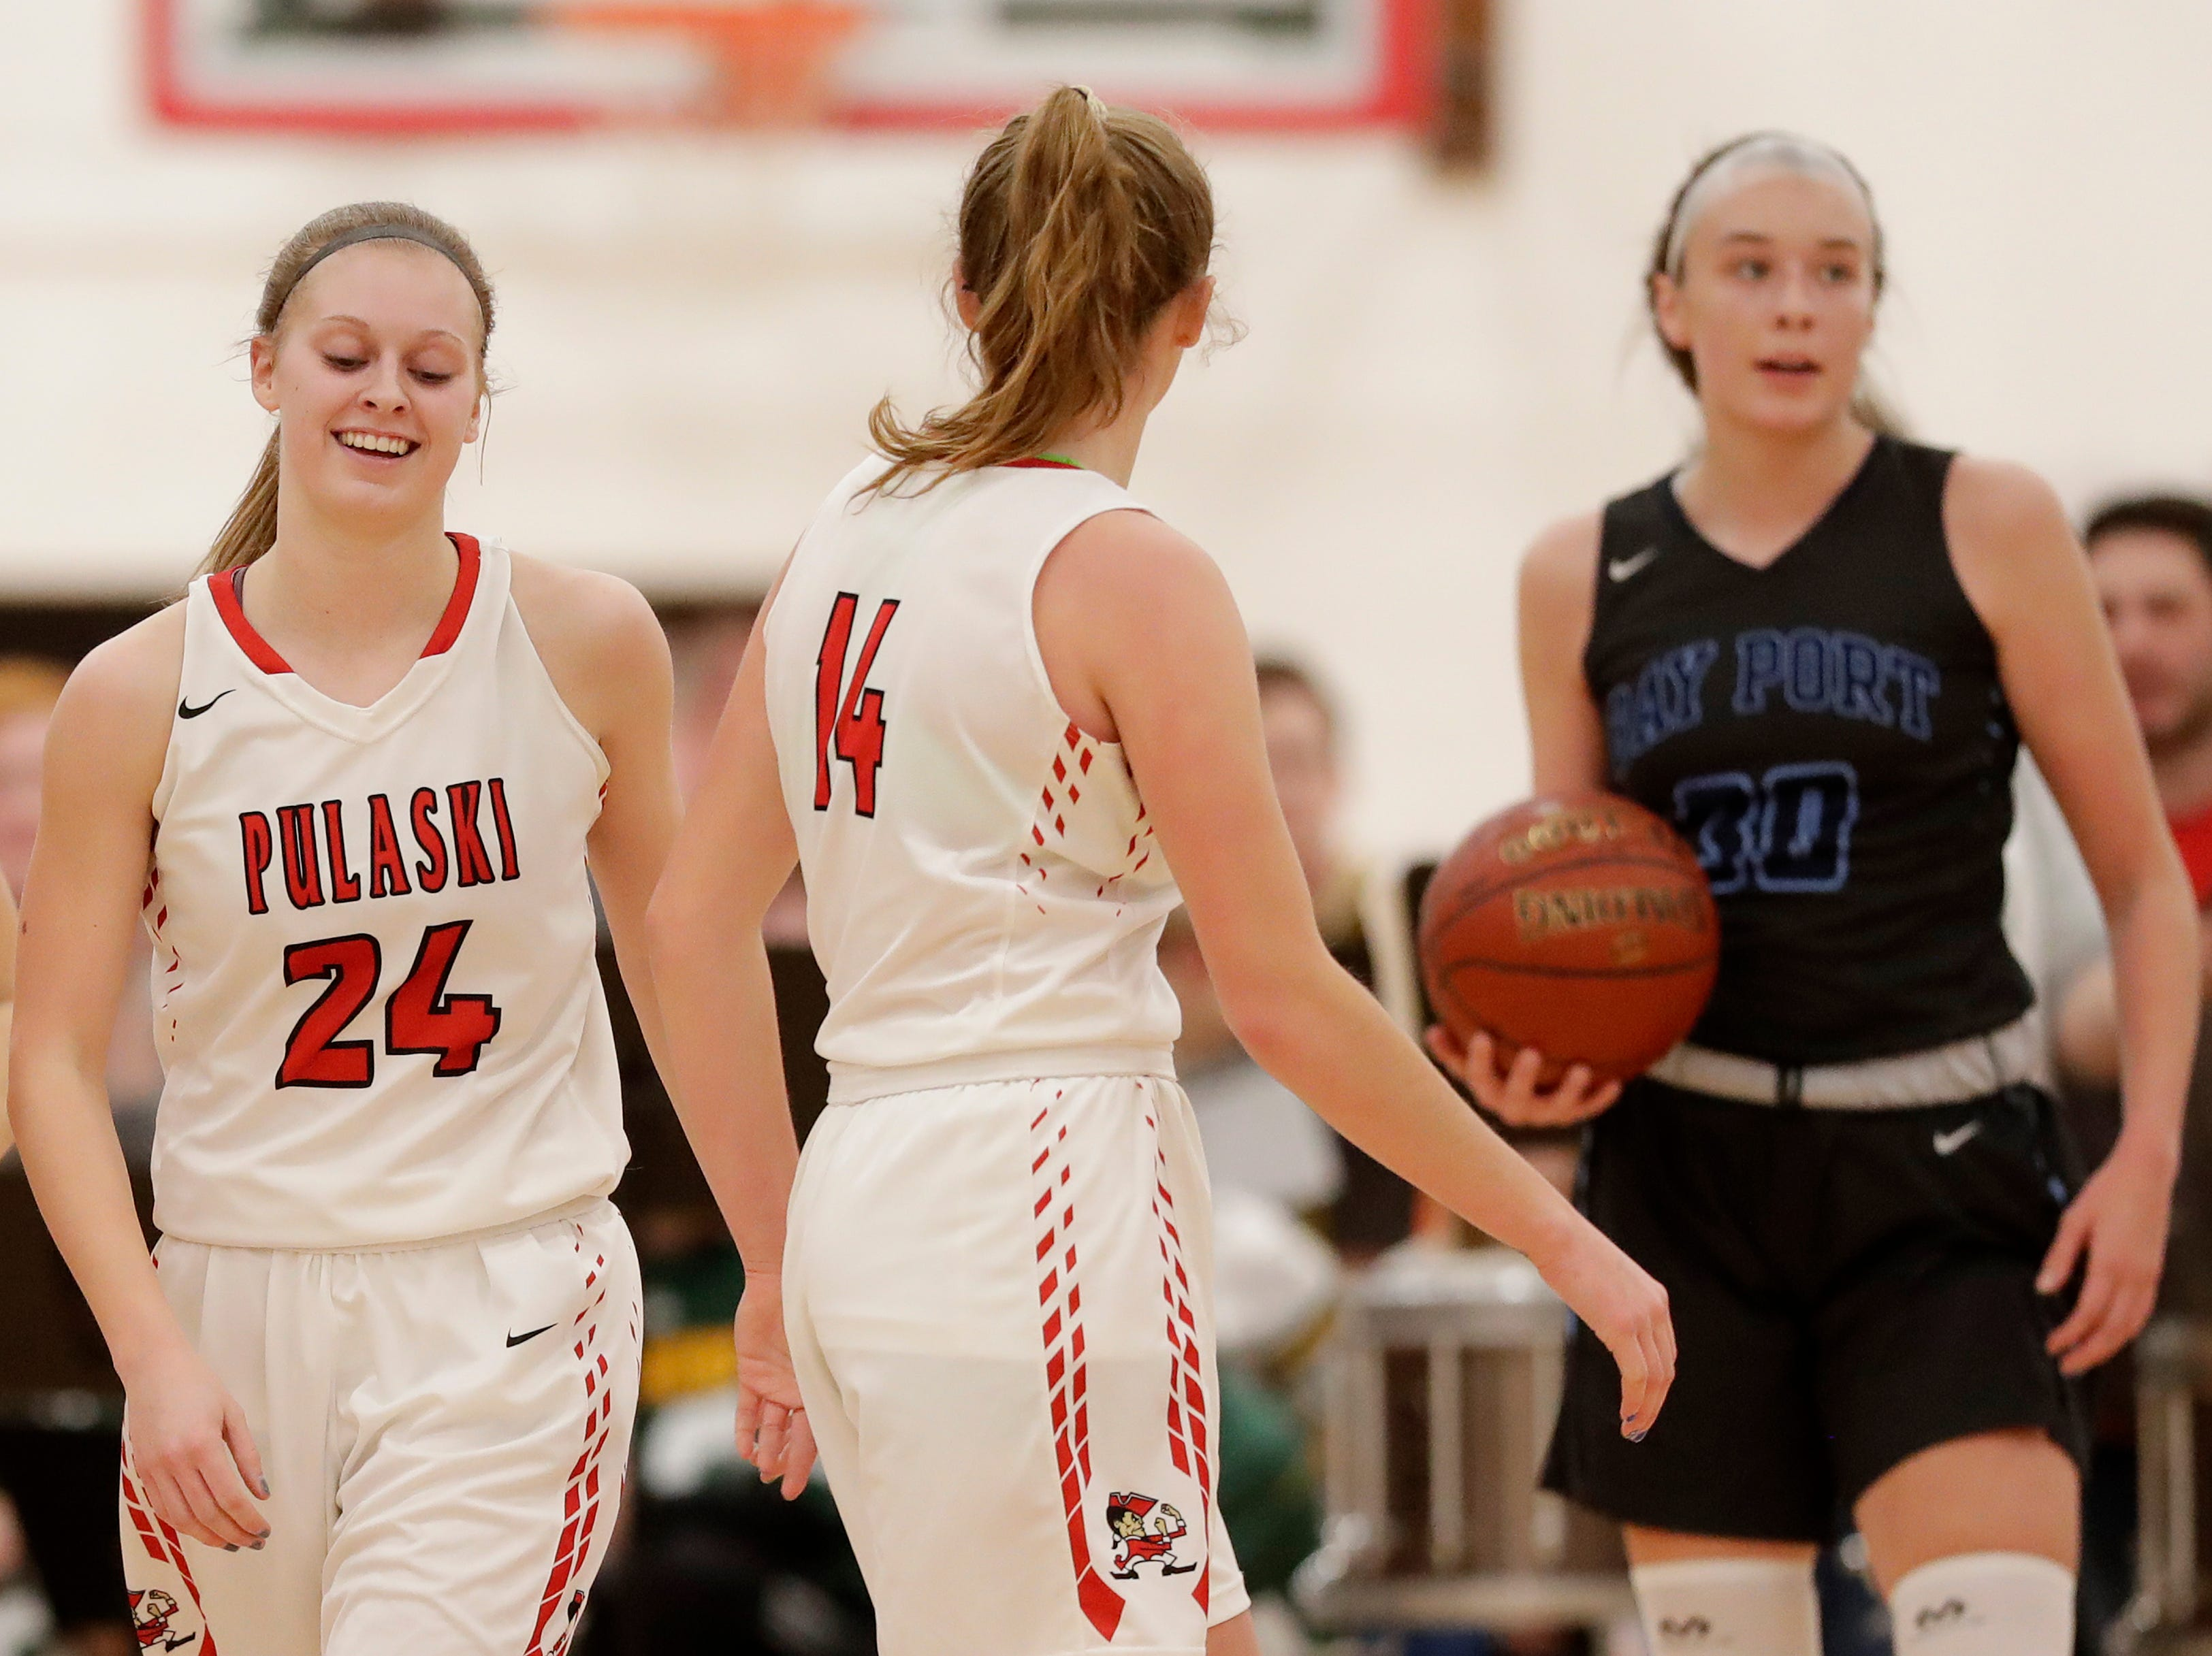 Pulaski's Chelsey Gilson (24) reacts after drawing a foul against Bay Port in a girls basketball game at Pulaski high school on Friday, January 4, 2019 in Pulaski, Wis.